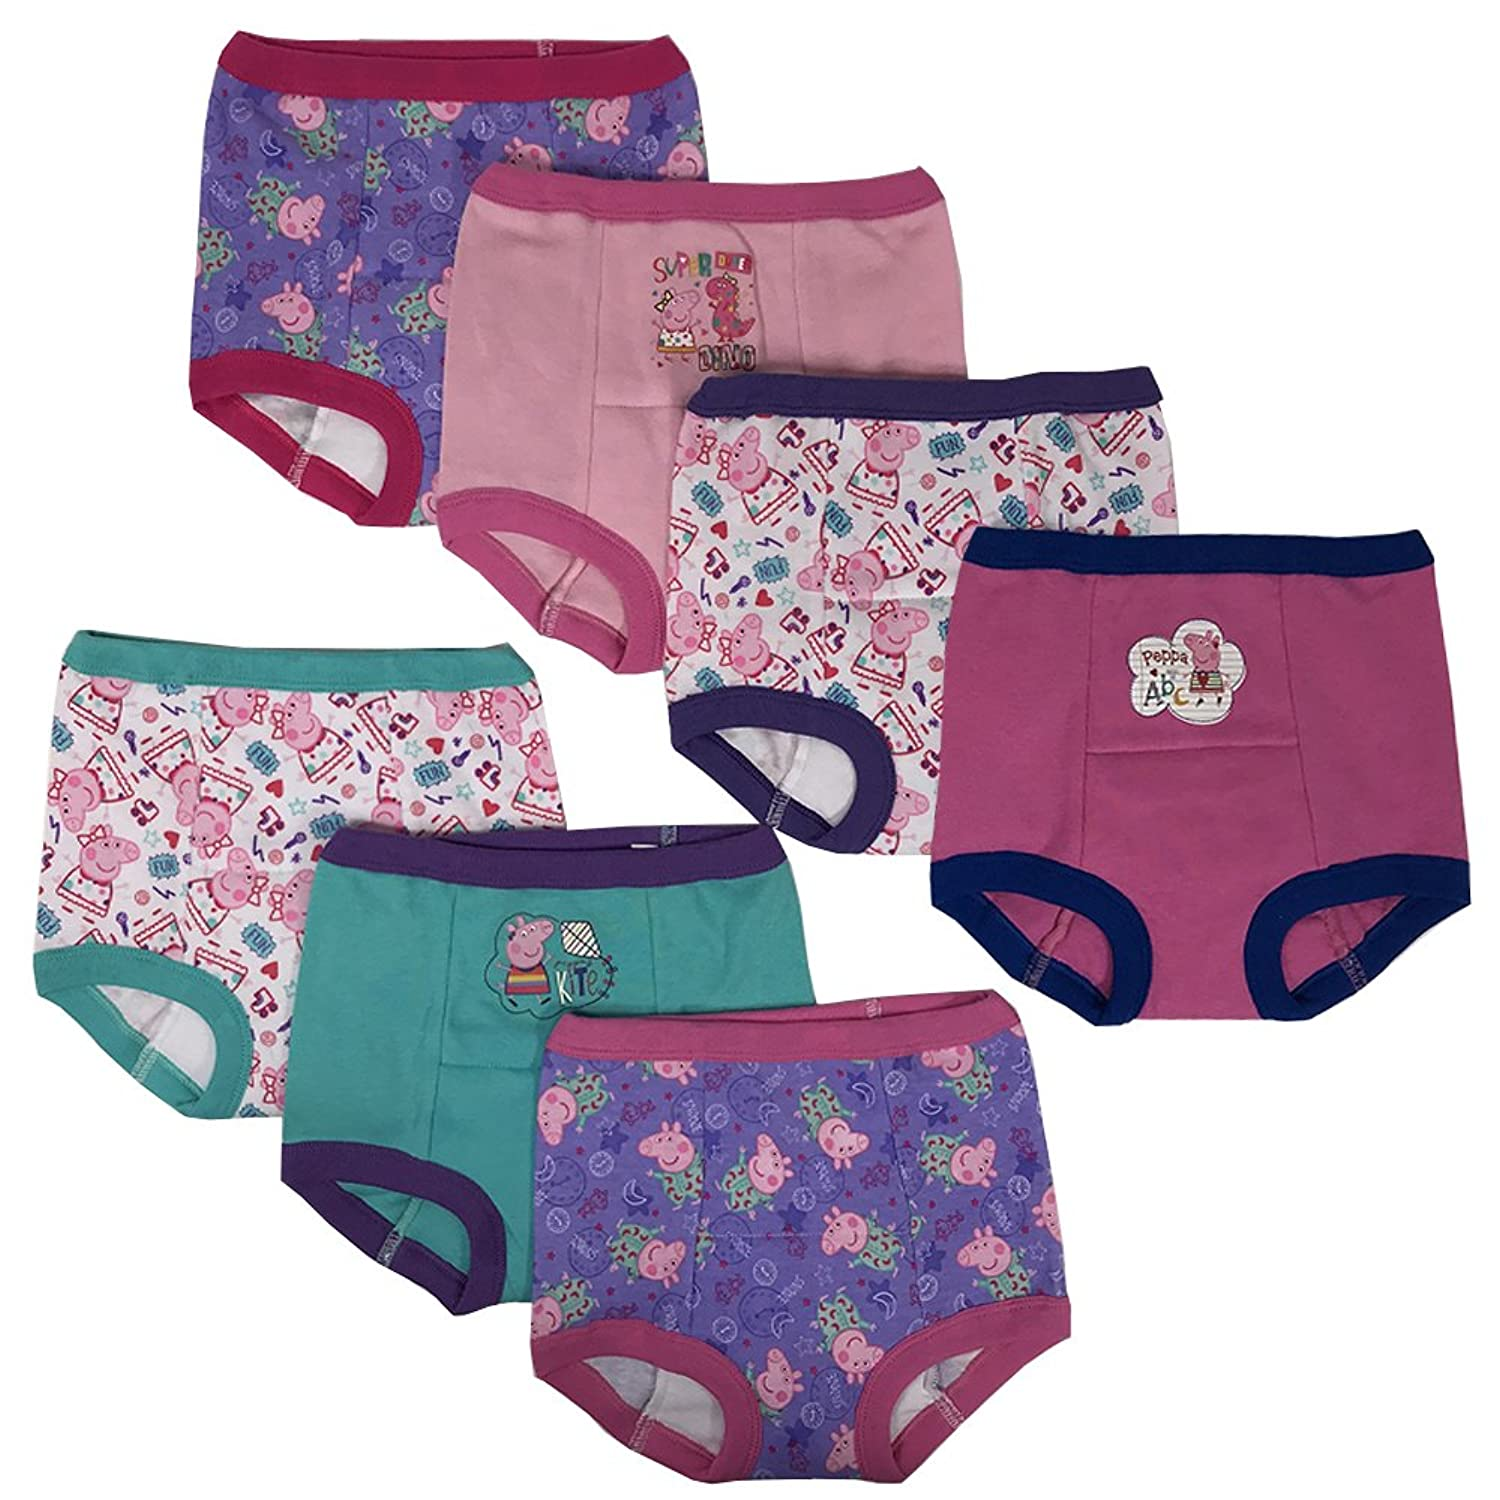 08dba86c7 Peppa Pig Girls Potty Training Pants Panties Underwear Toddler 7-Pack Size  2T 3T 4T